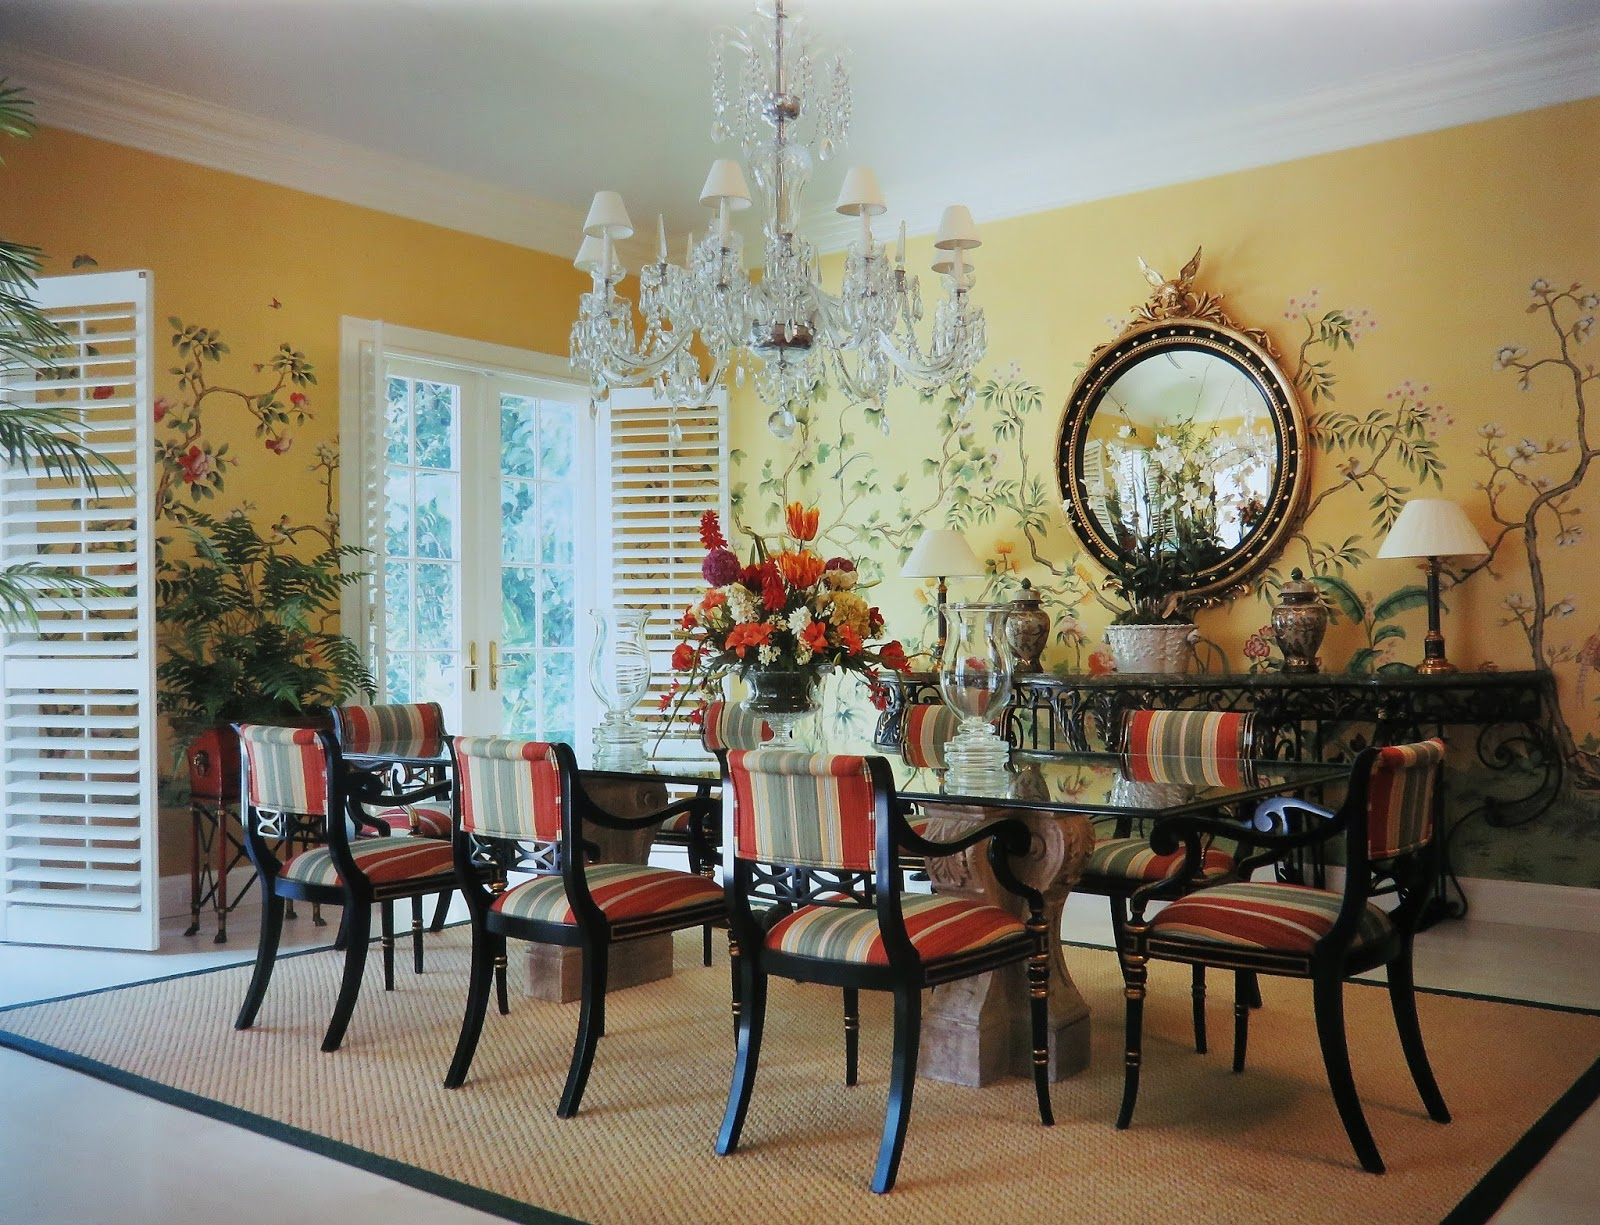 Except For Hand Painted Chinoiserie Wallpaper In The Dining Room!